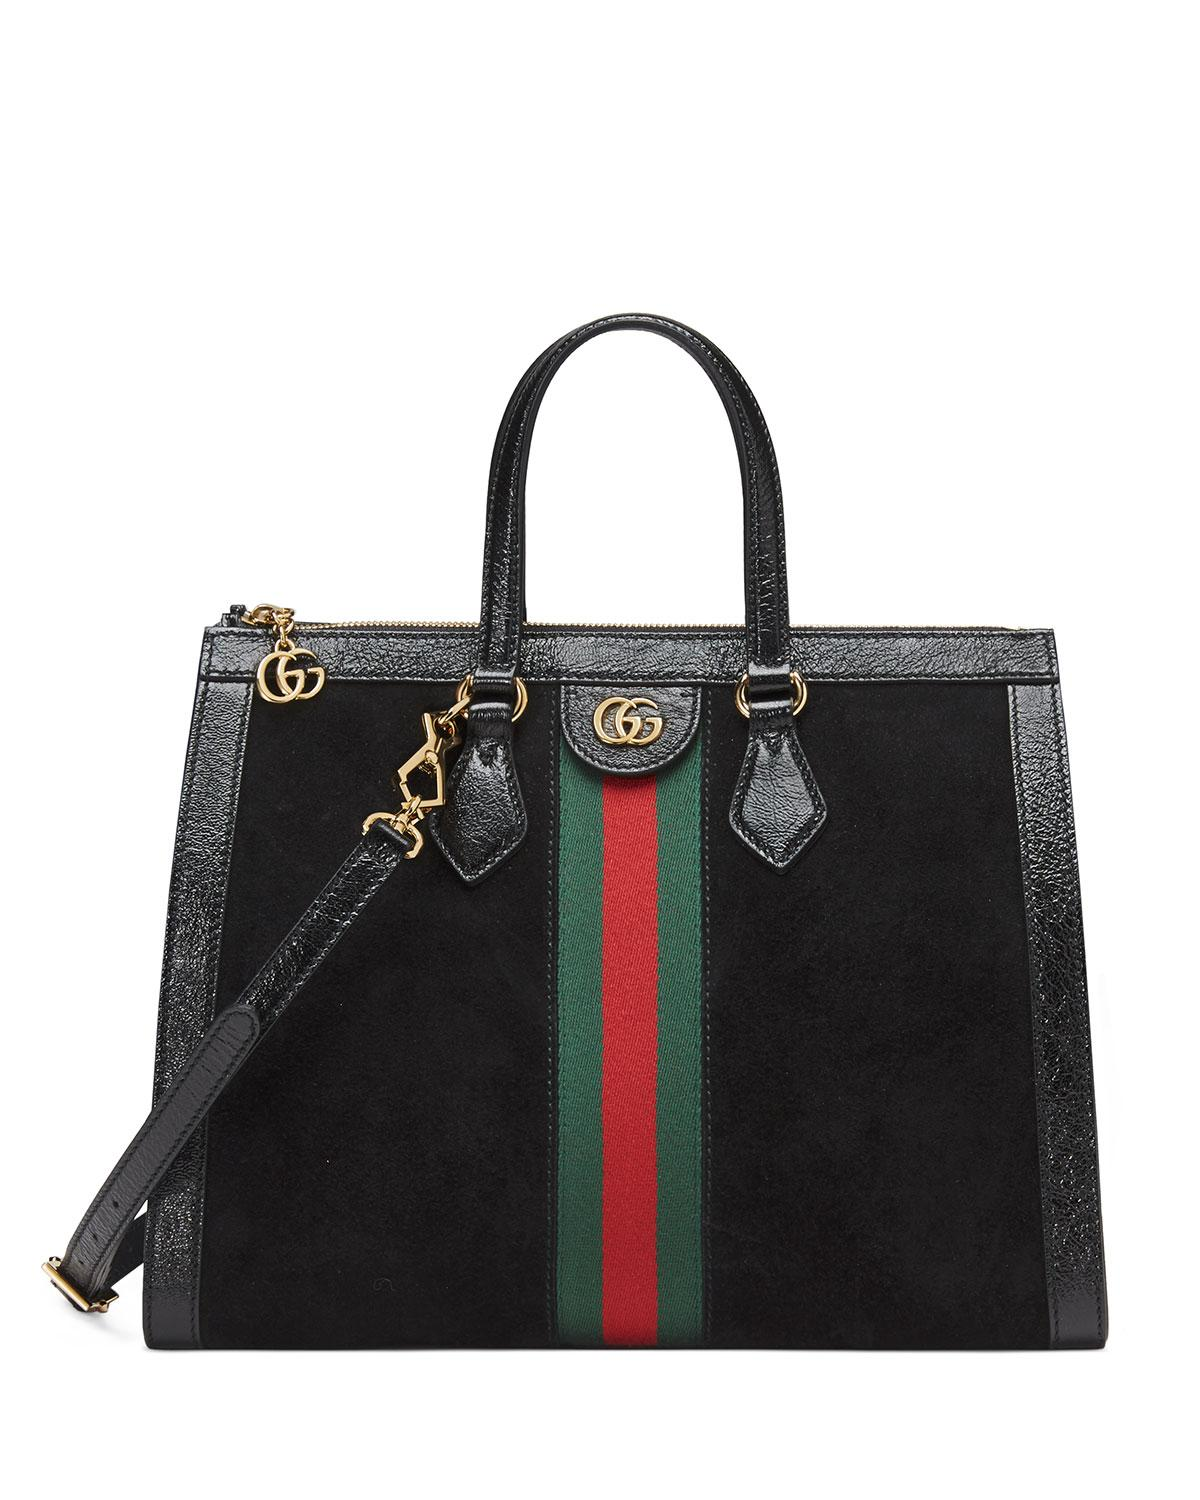 0ff704cad5c85d Gucci Ophidia Web Suede Top-handle Tote Bag in Black - Lyst